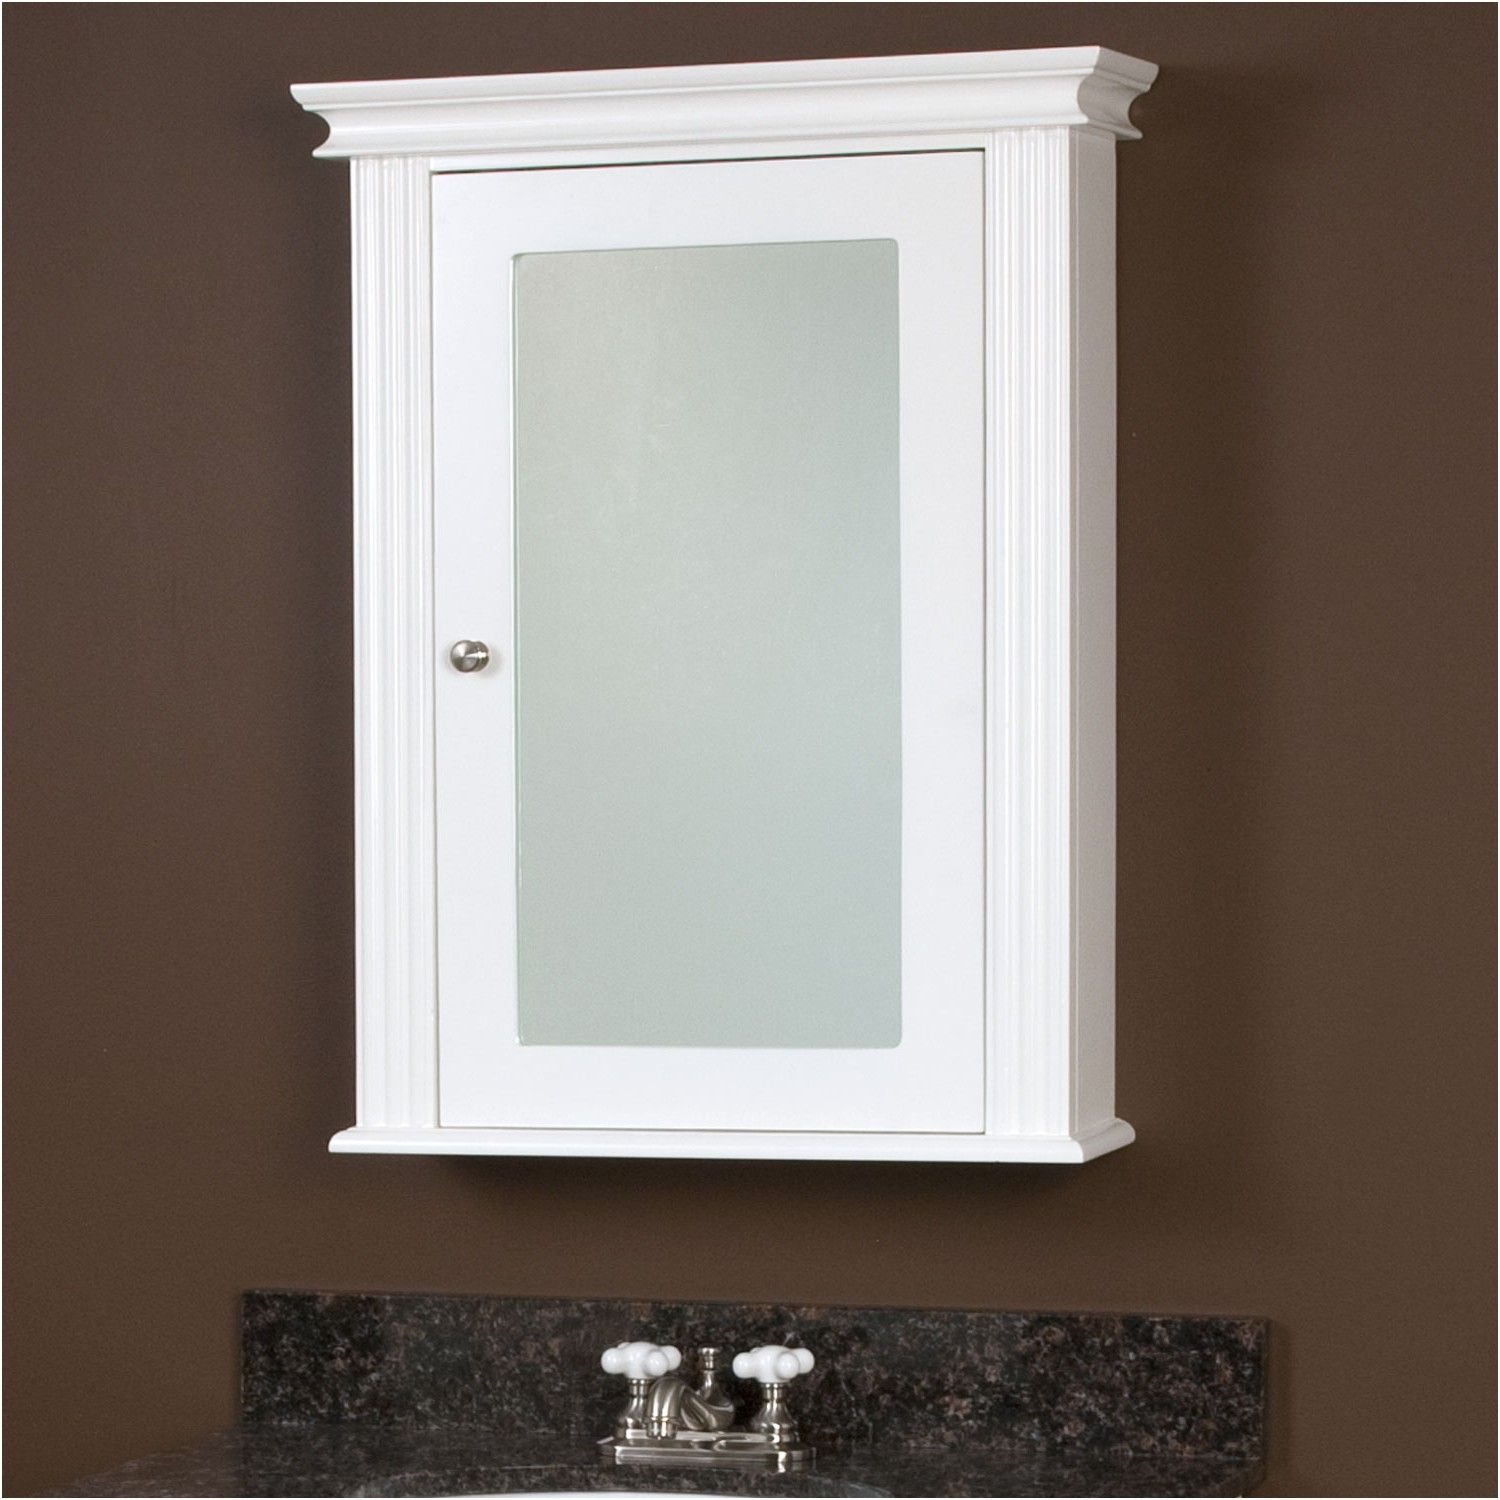 Recessed Medicine Cabinets Without Mirror From Bathroom Medicine Cabinets Without Mirrors